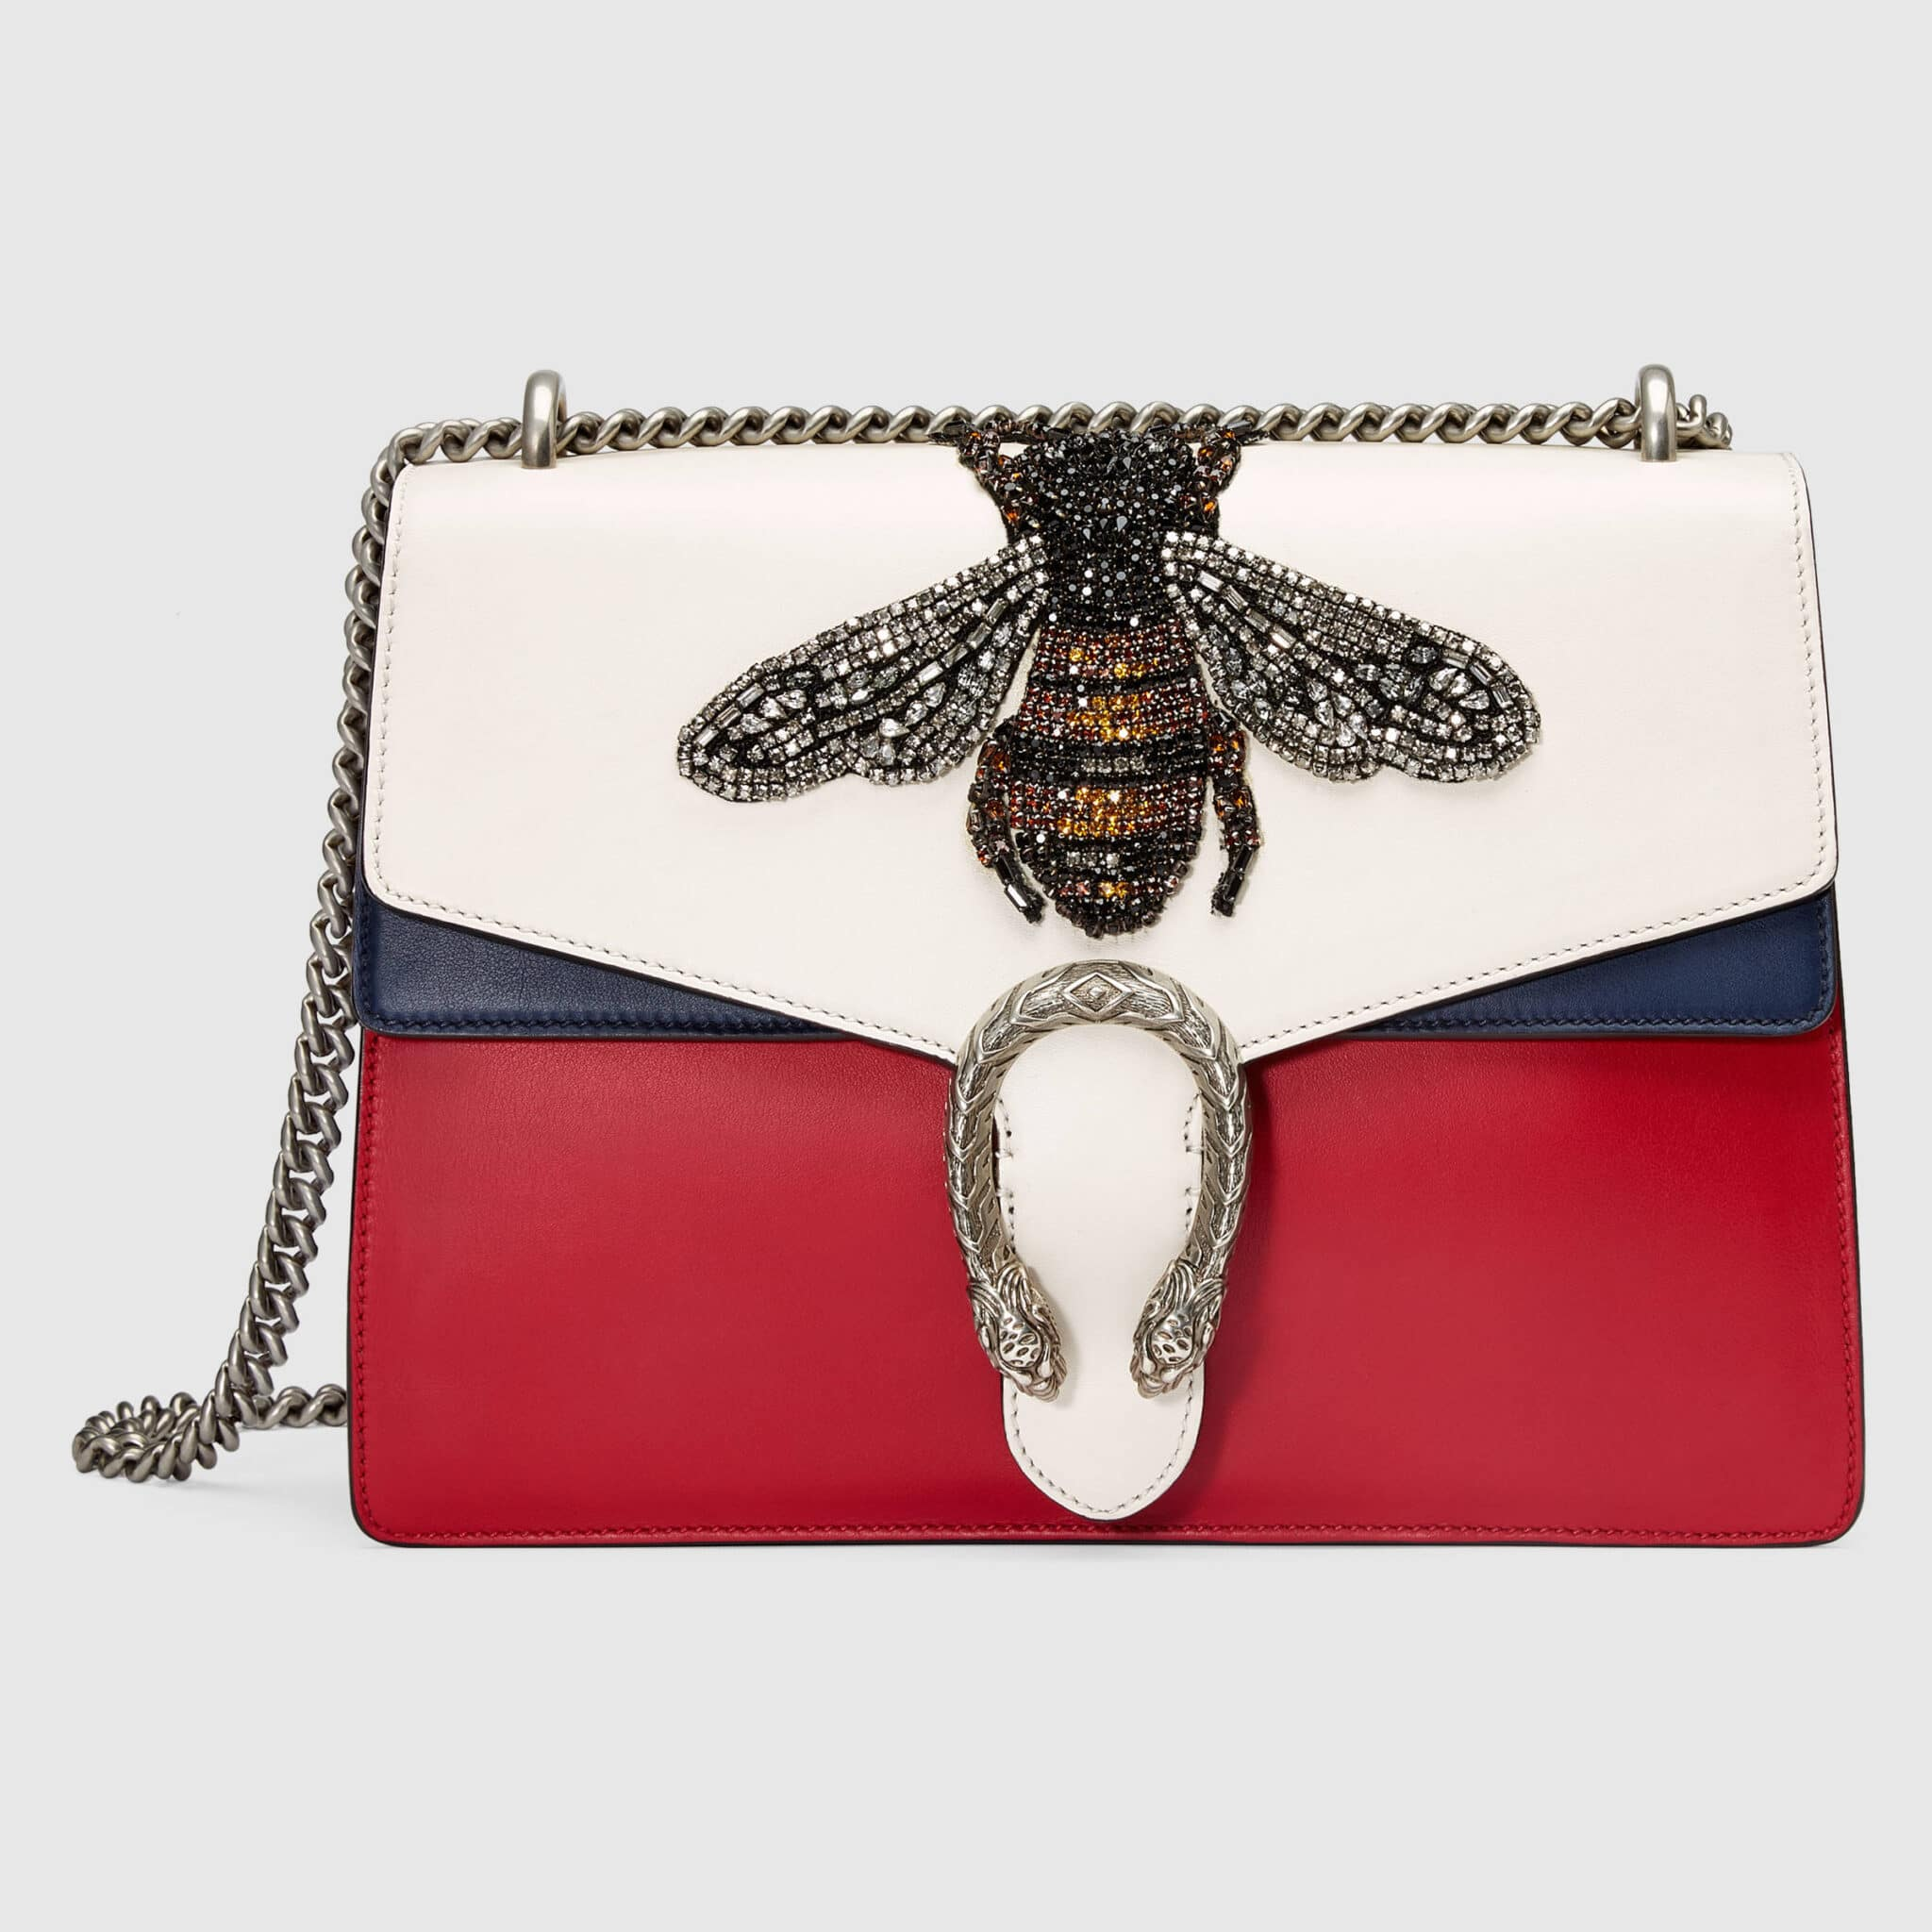 Gucci White Red Blue Bee Embroidered Medium Dionysus Shoulder Bag 5989bfe18dbb7